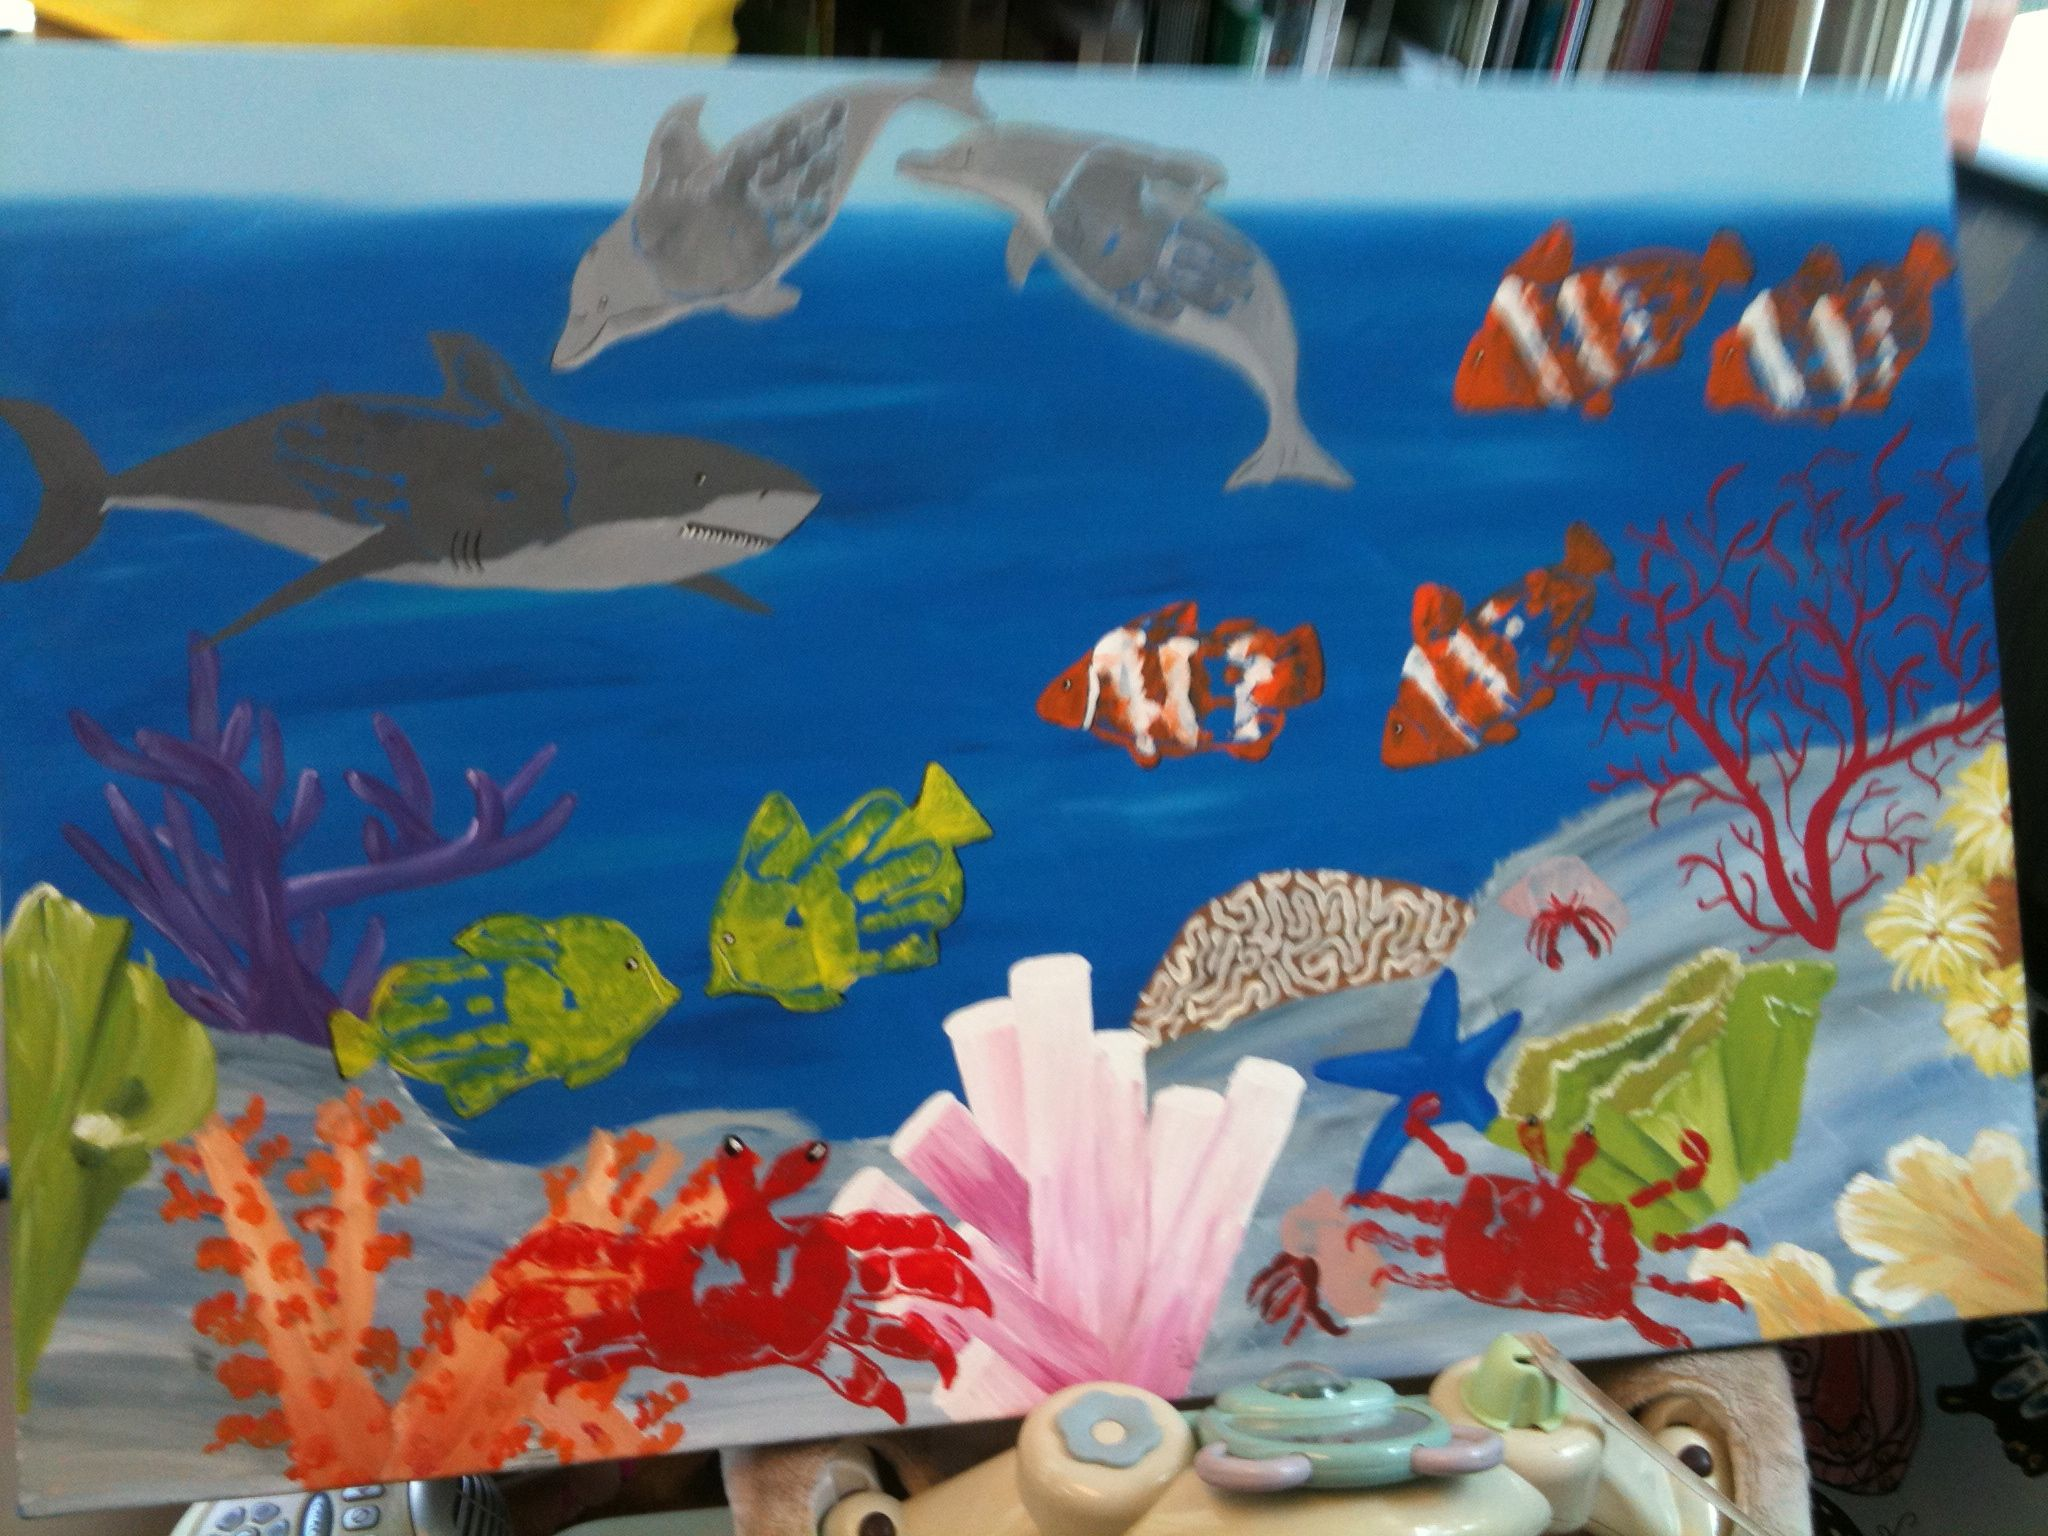 made with jen davidson handprint fish shark dolphins etc made with jen davidson handprint fish shark dolphins etc